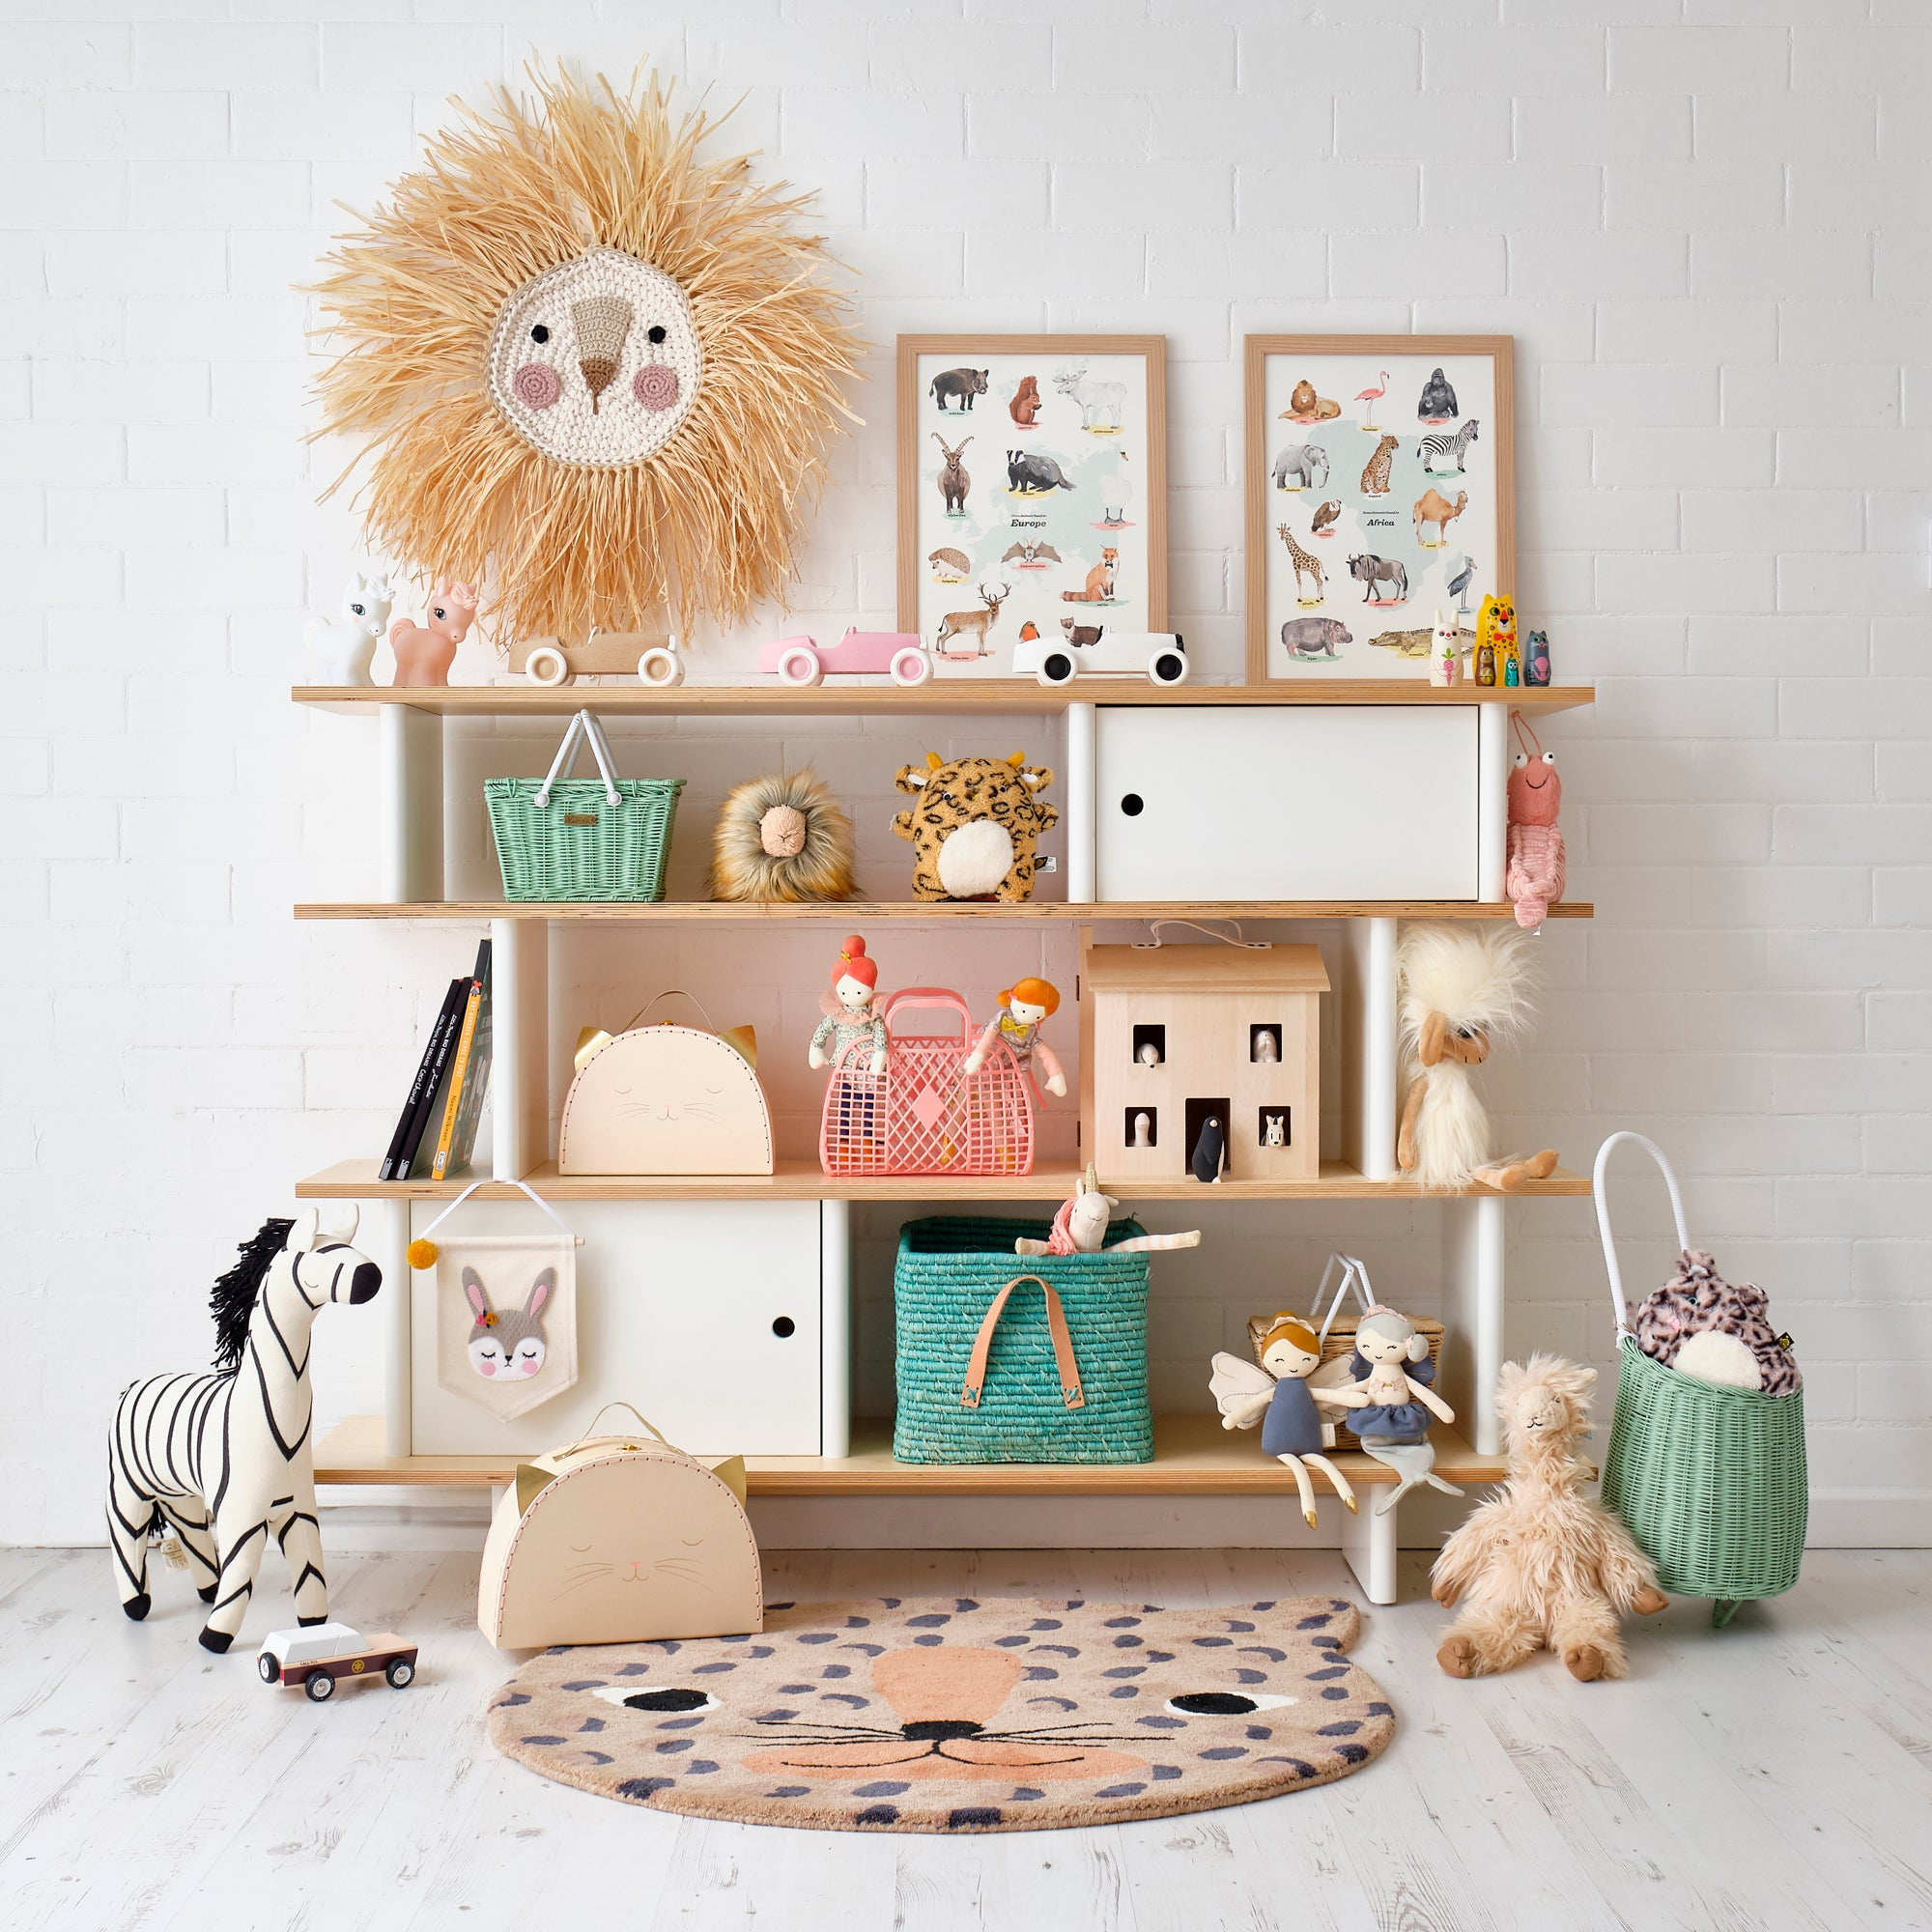 Mini Library Shelf, Toys and Accessories, styled by Bobby Rabbit.